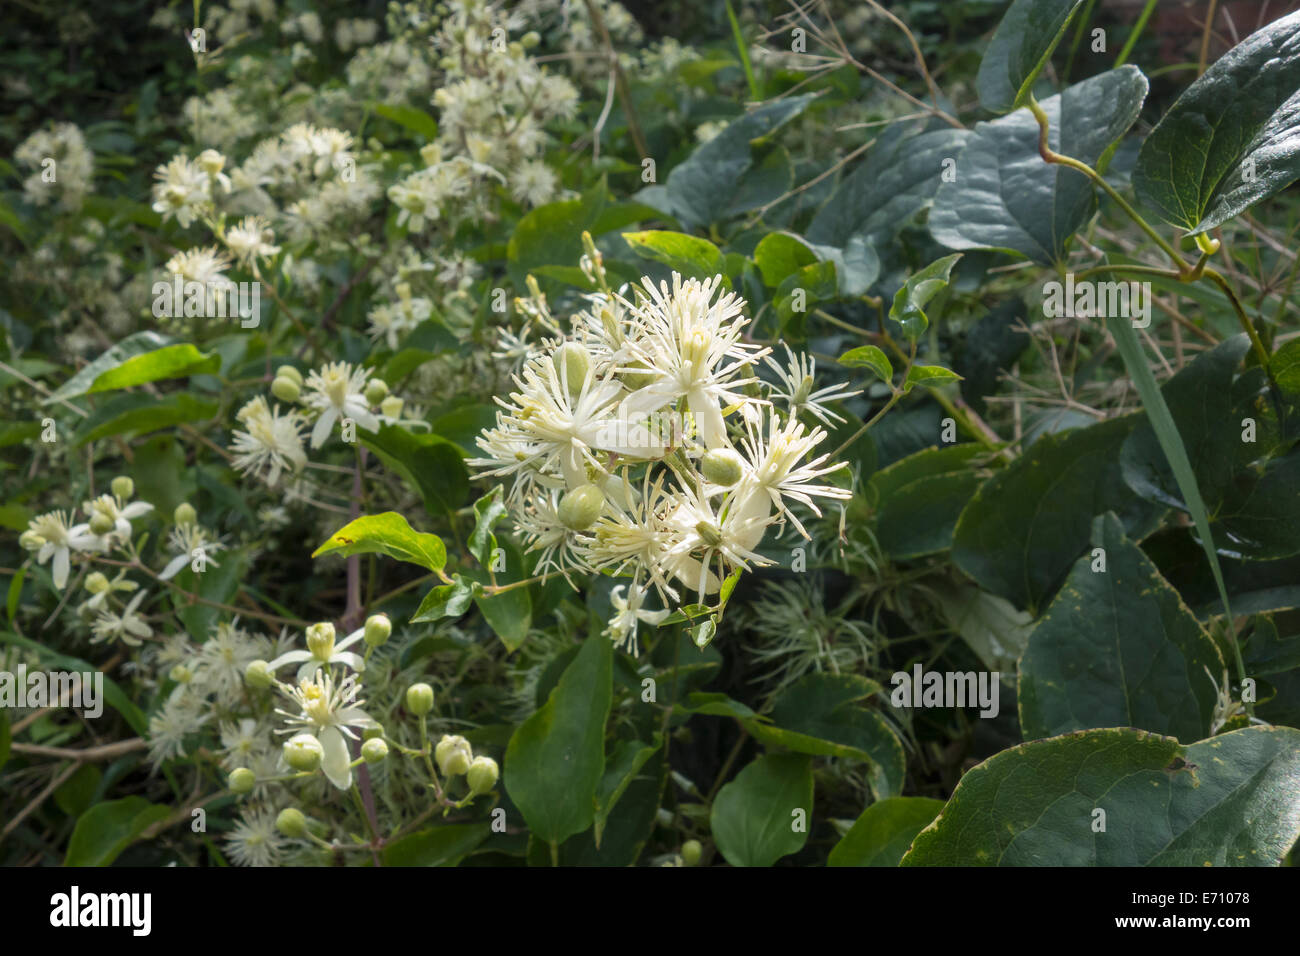 Travellers Joy wild rambling plant creamy white flower - Stock Image